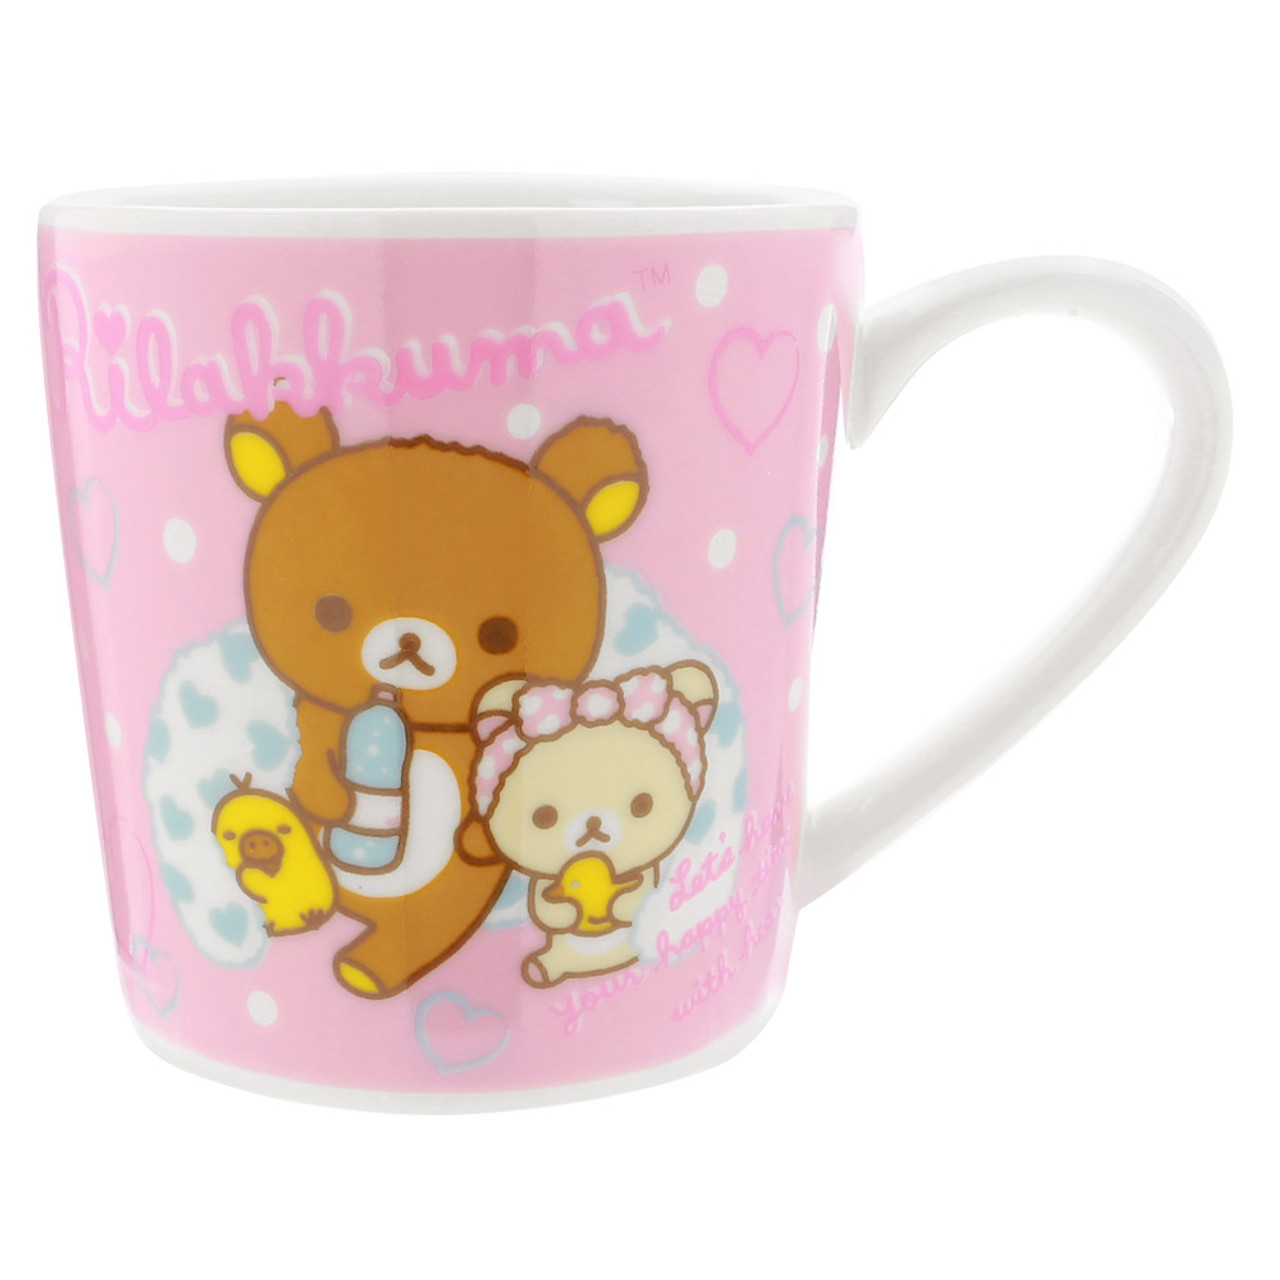 San-x Rilakkuma Bath Time Light Pink Ceramic Mug - Bubble ( Front View )